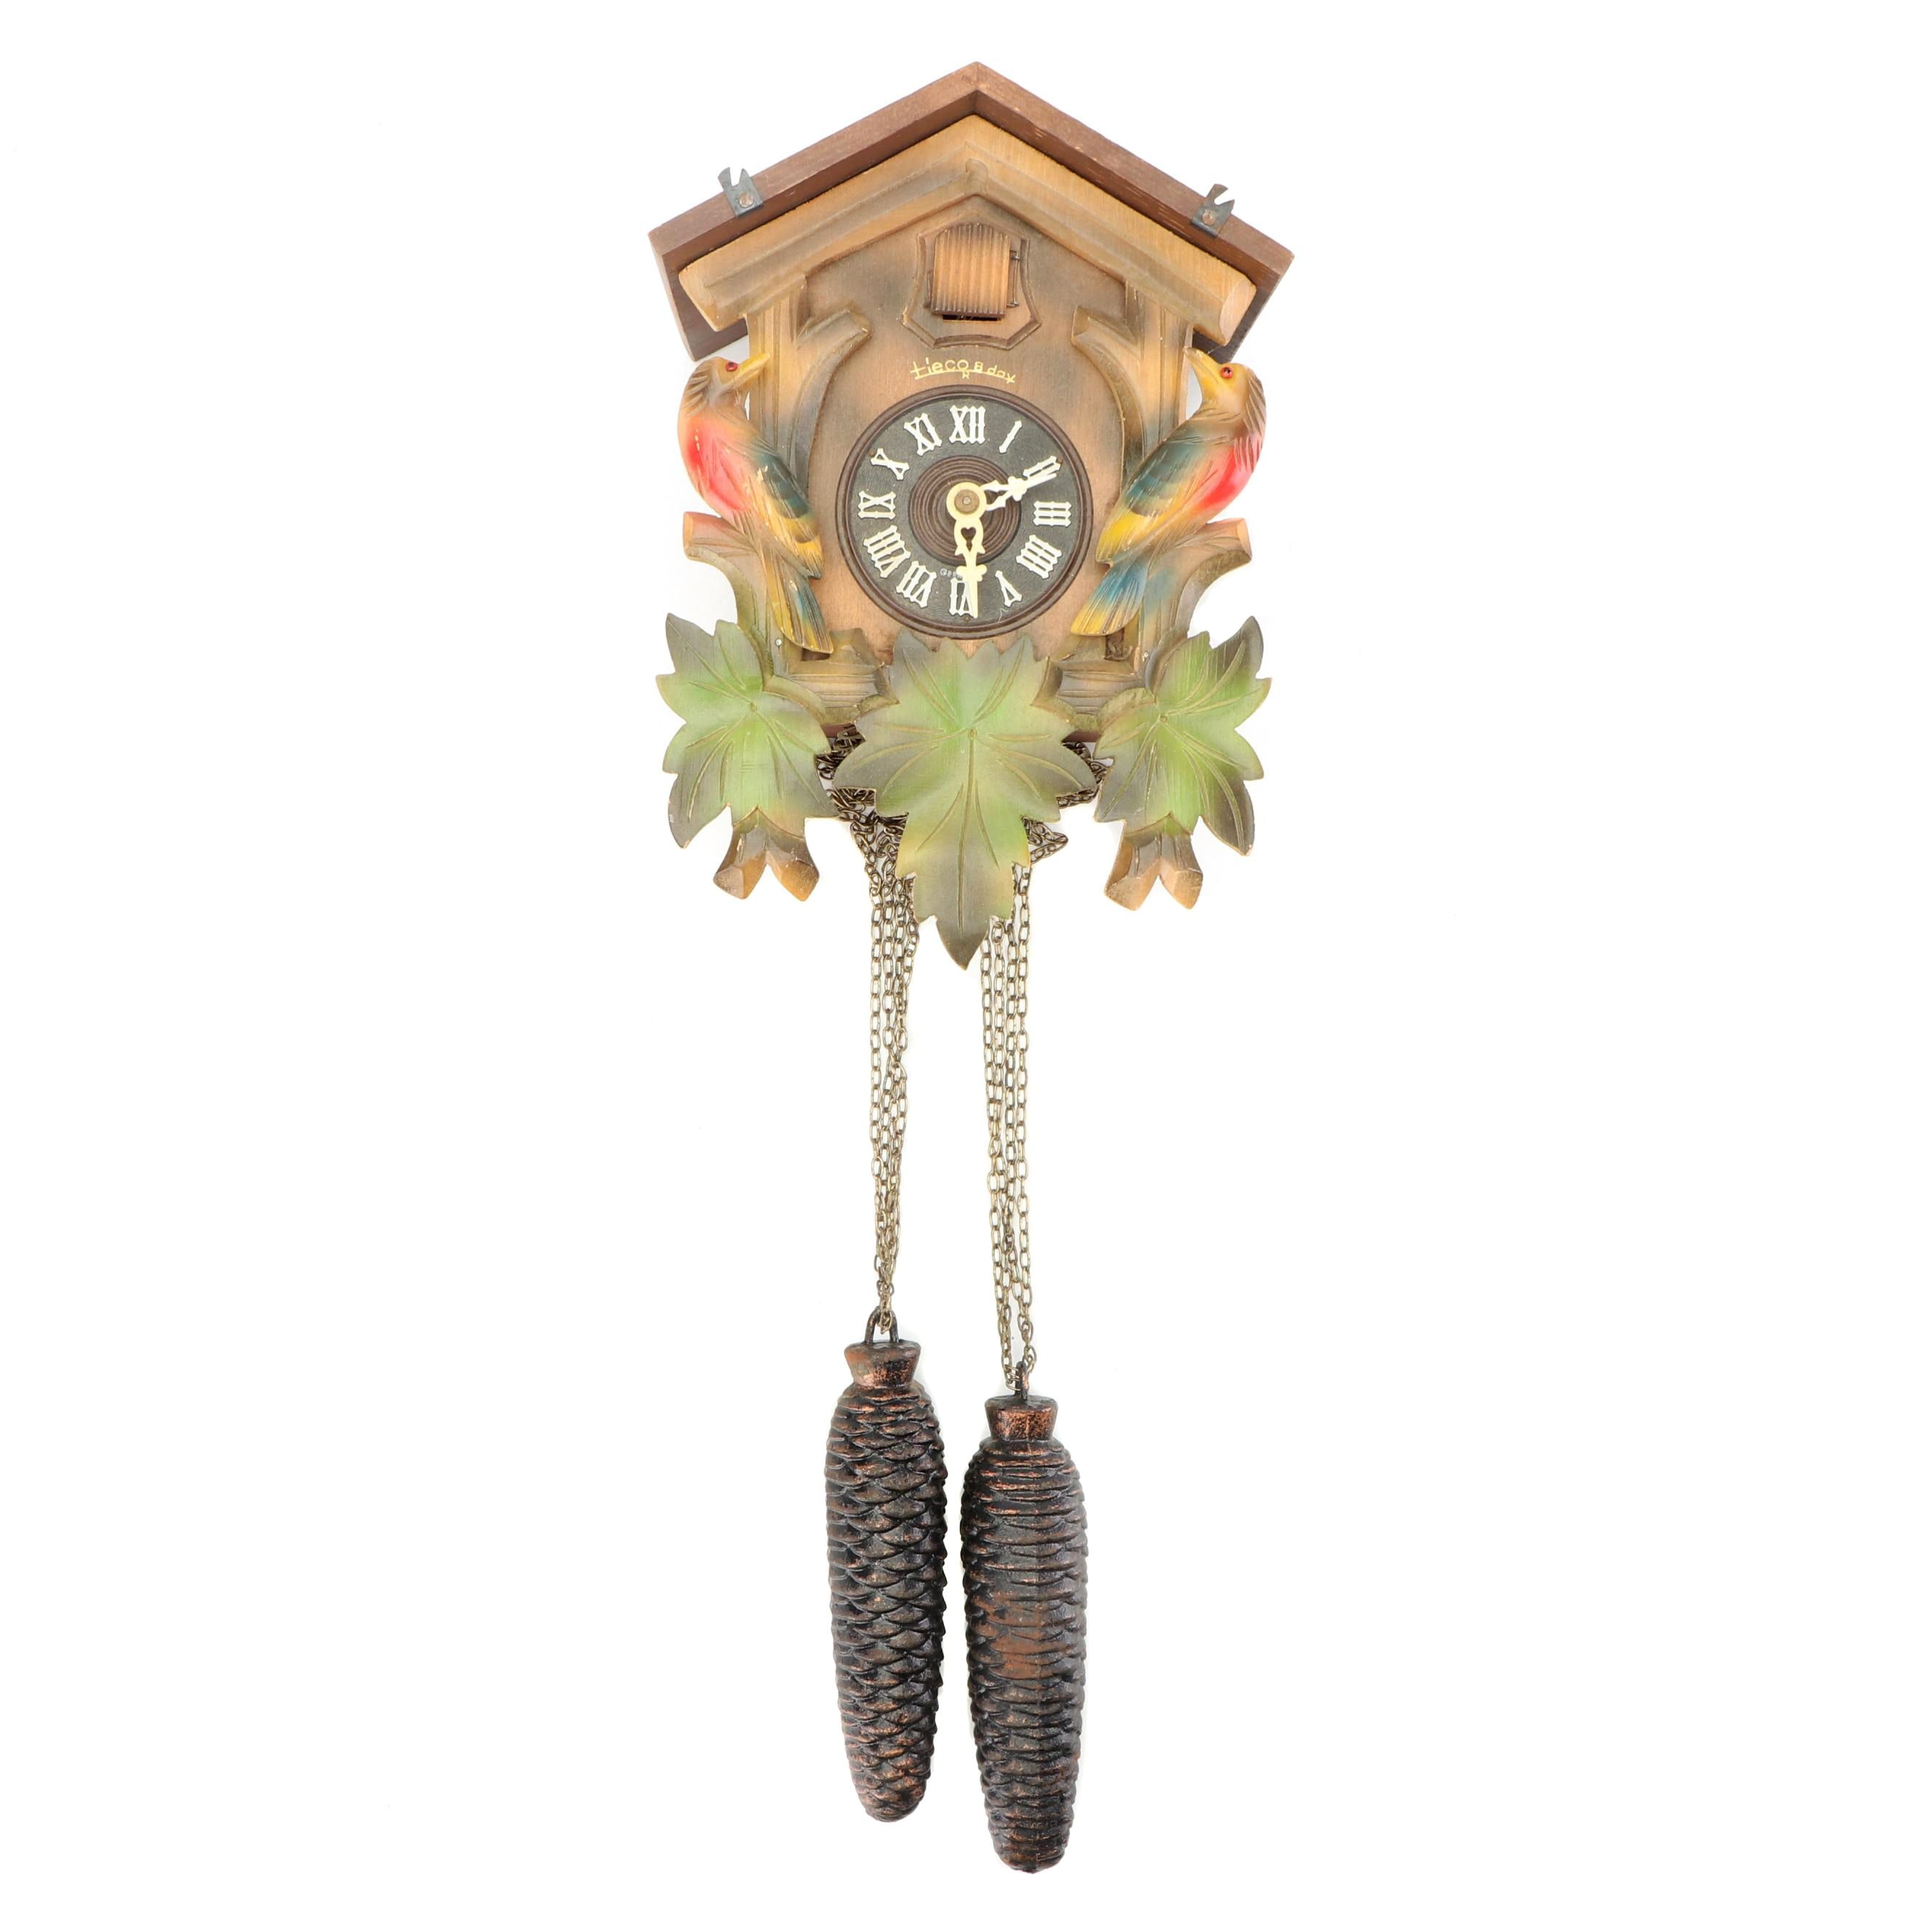 German Heco 8 Day Cuckoo Clock